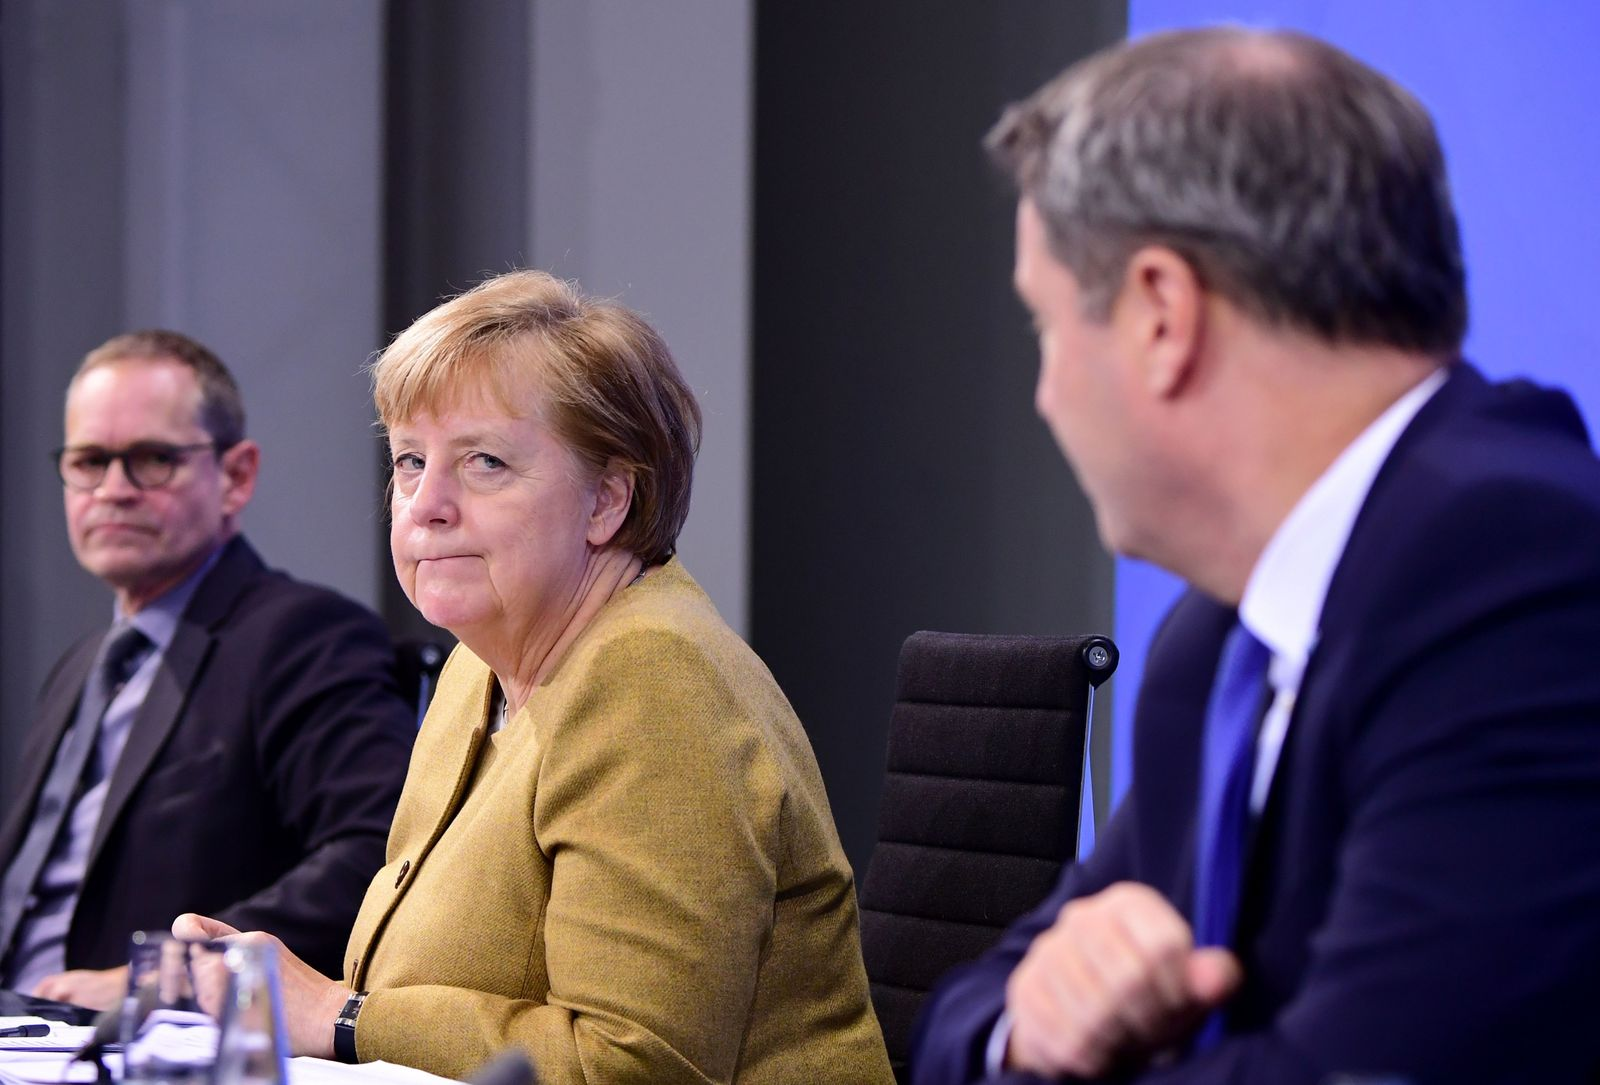 Presser after German Chancellor Merkel's video conference with German State Premiers, Berlin, Germany - 25 Nov 2020